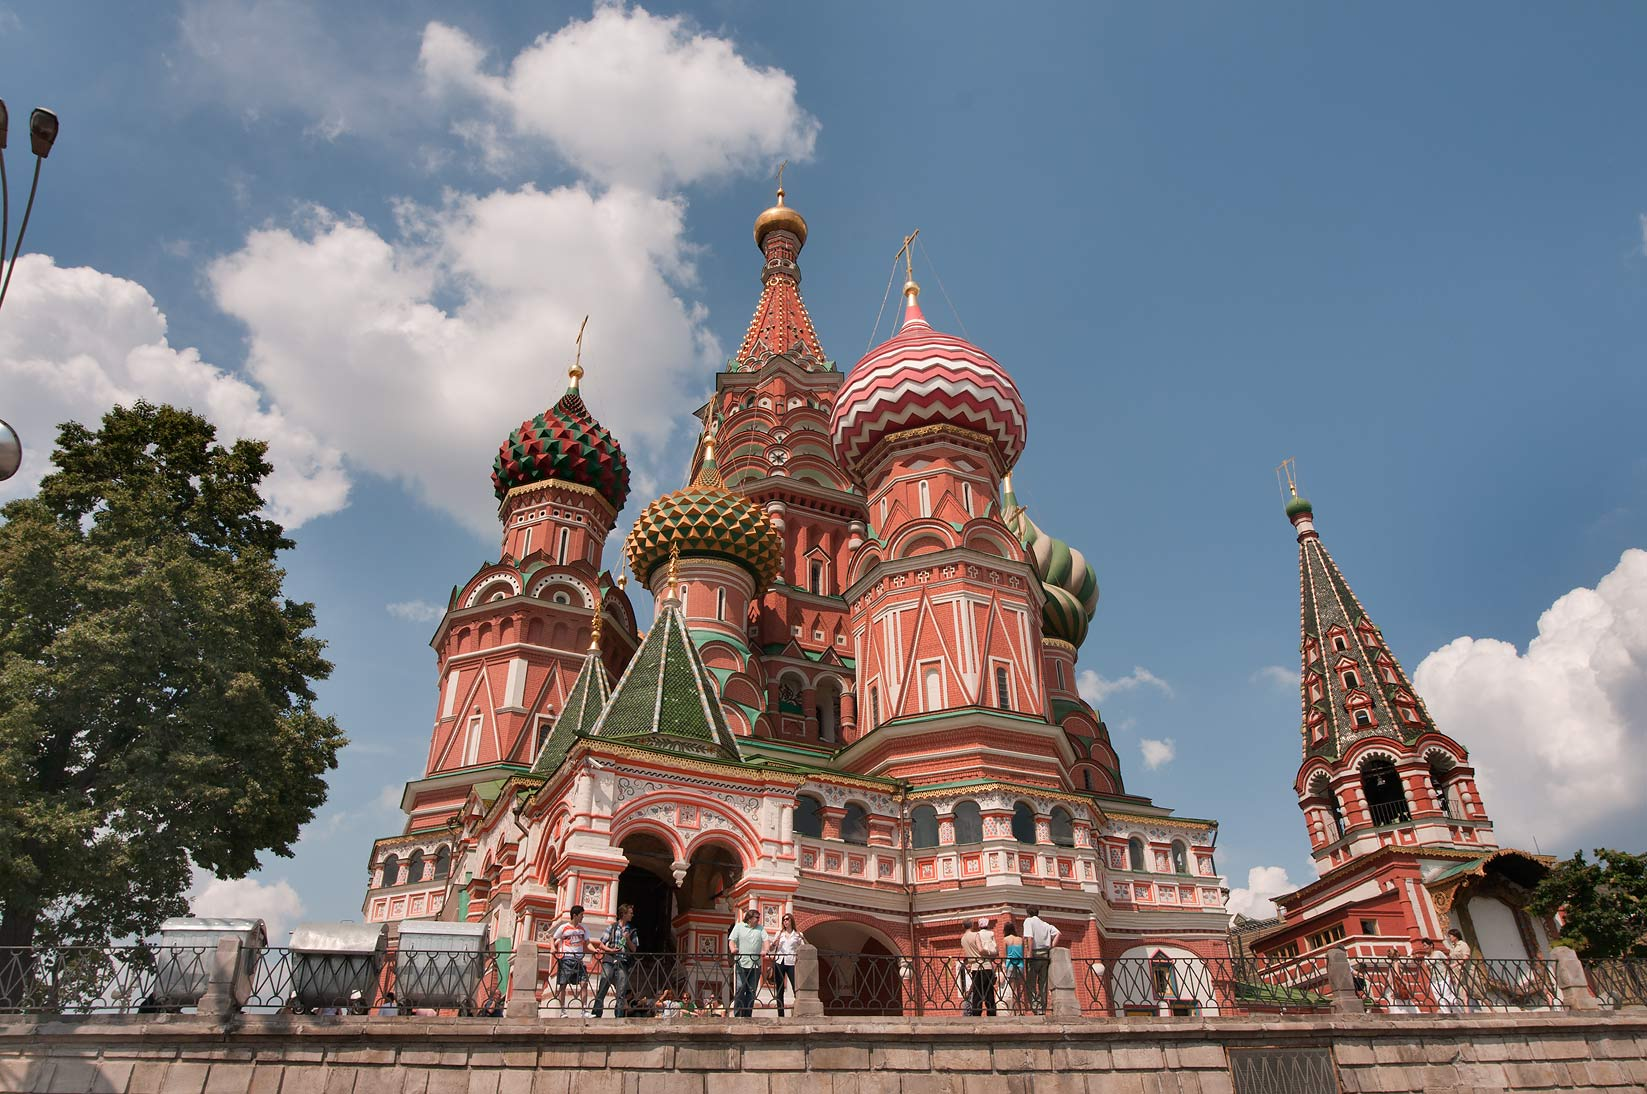 St. Basil's Cathedral (Pokrovsky Sobor) on Red Square near Kremlin. Moscow, Russia